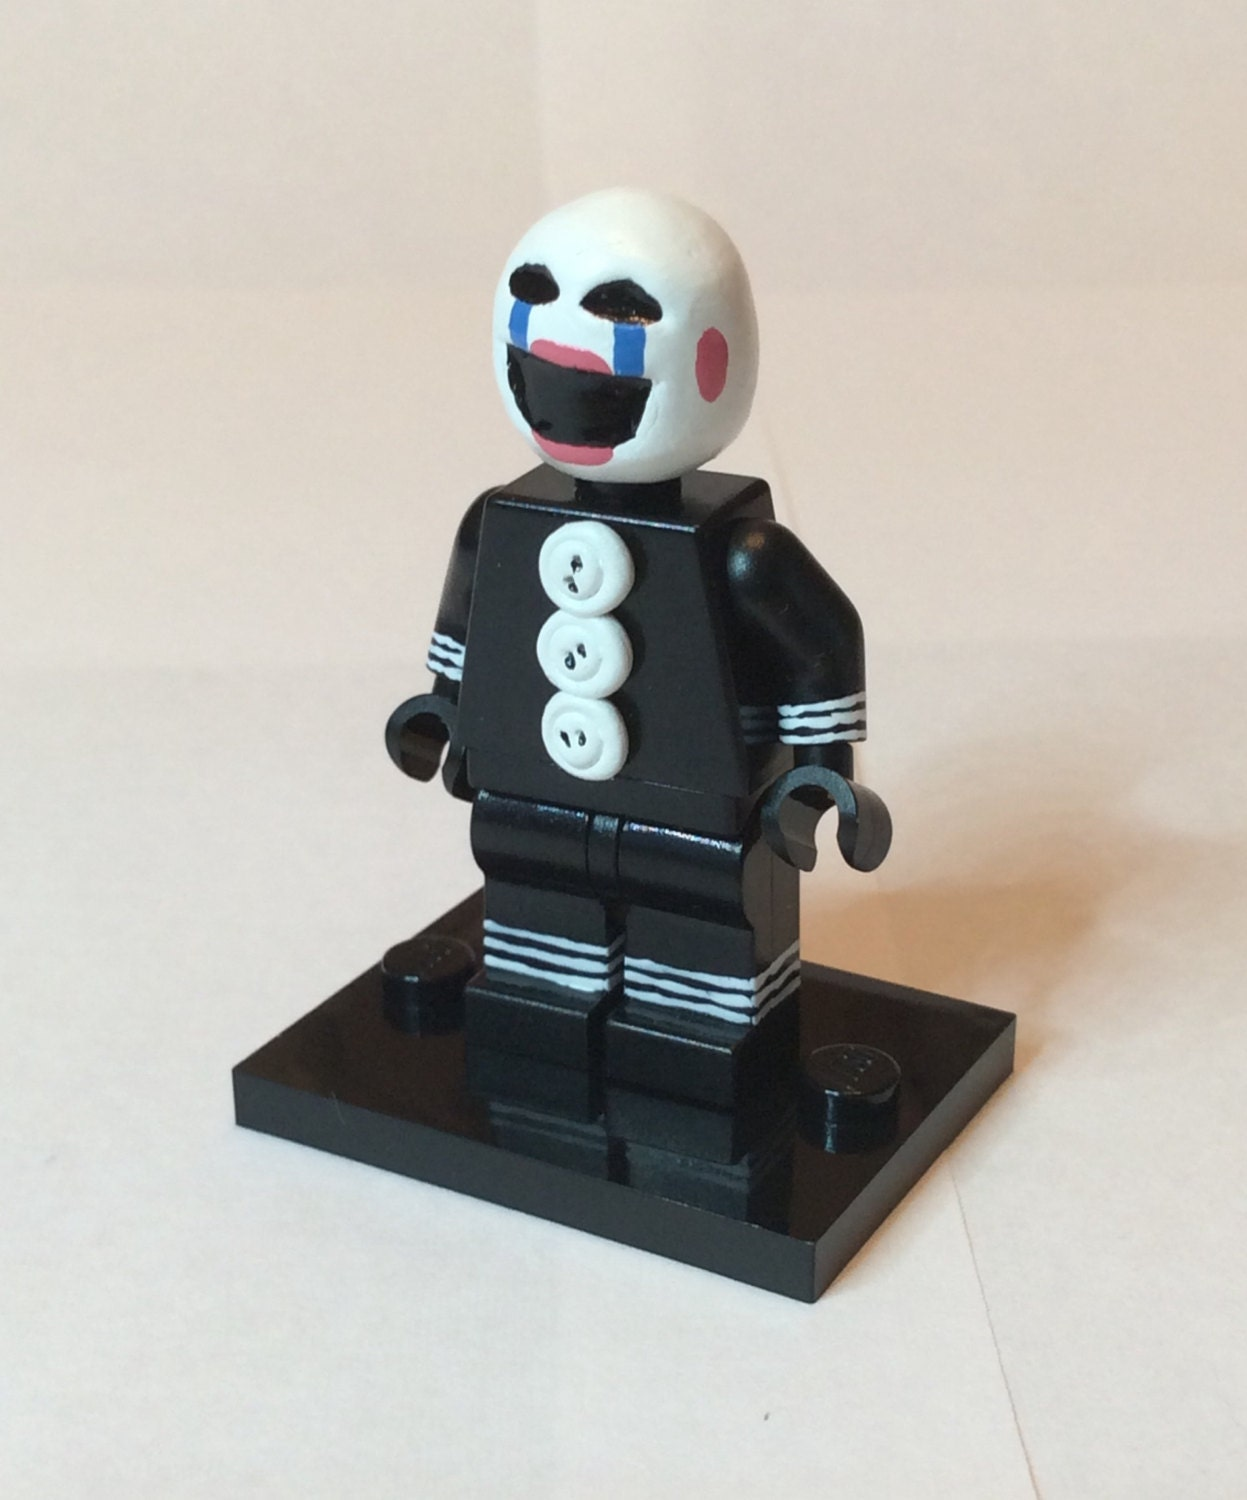 Lego 5 Nights At Freddy S Toys : Withered toy puppet five nights at freddy s custom lego